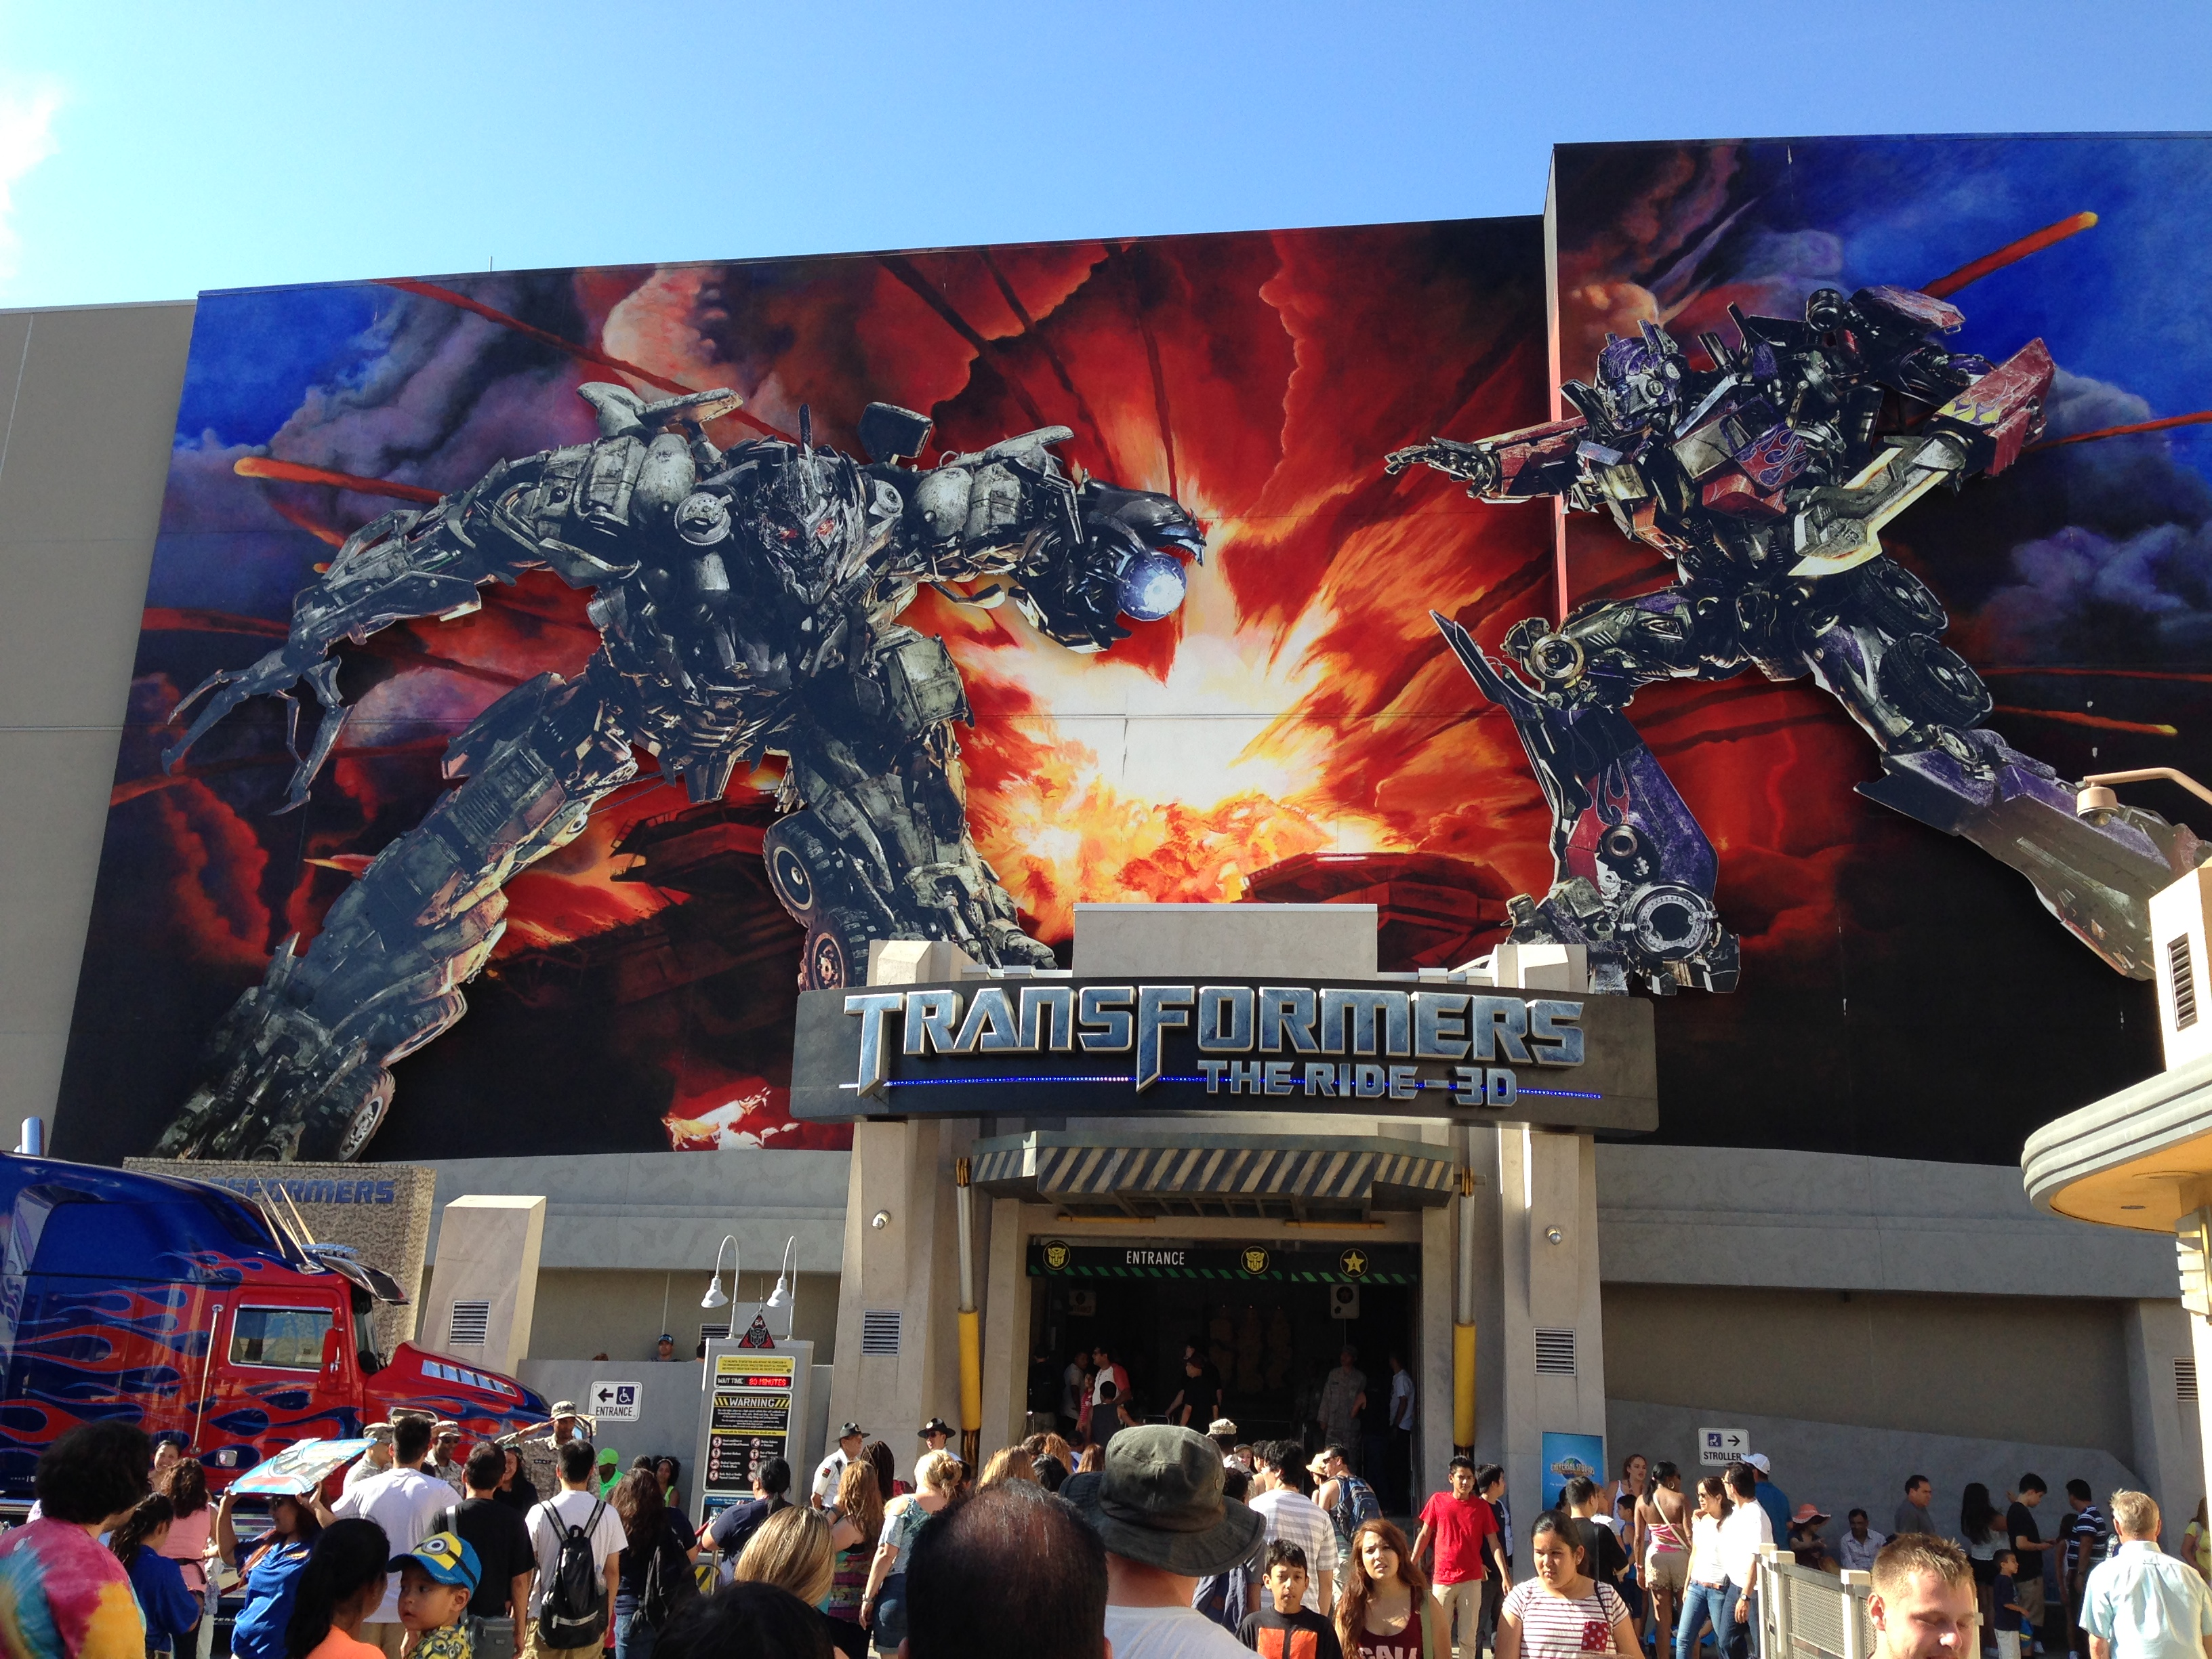 The Transformers Ride. (Botcon Day 2)